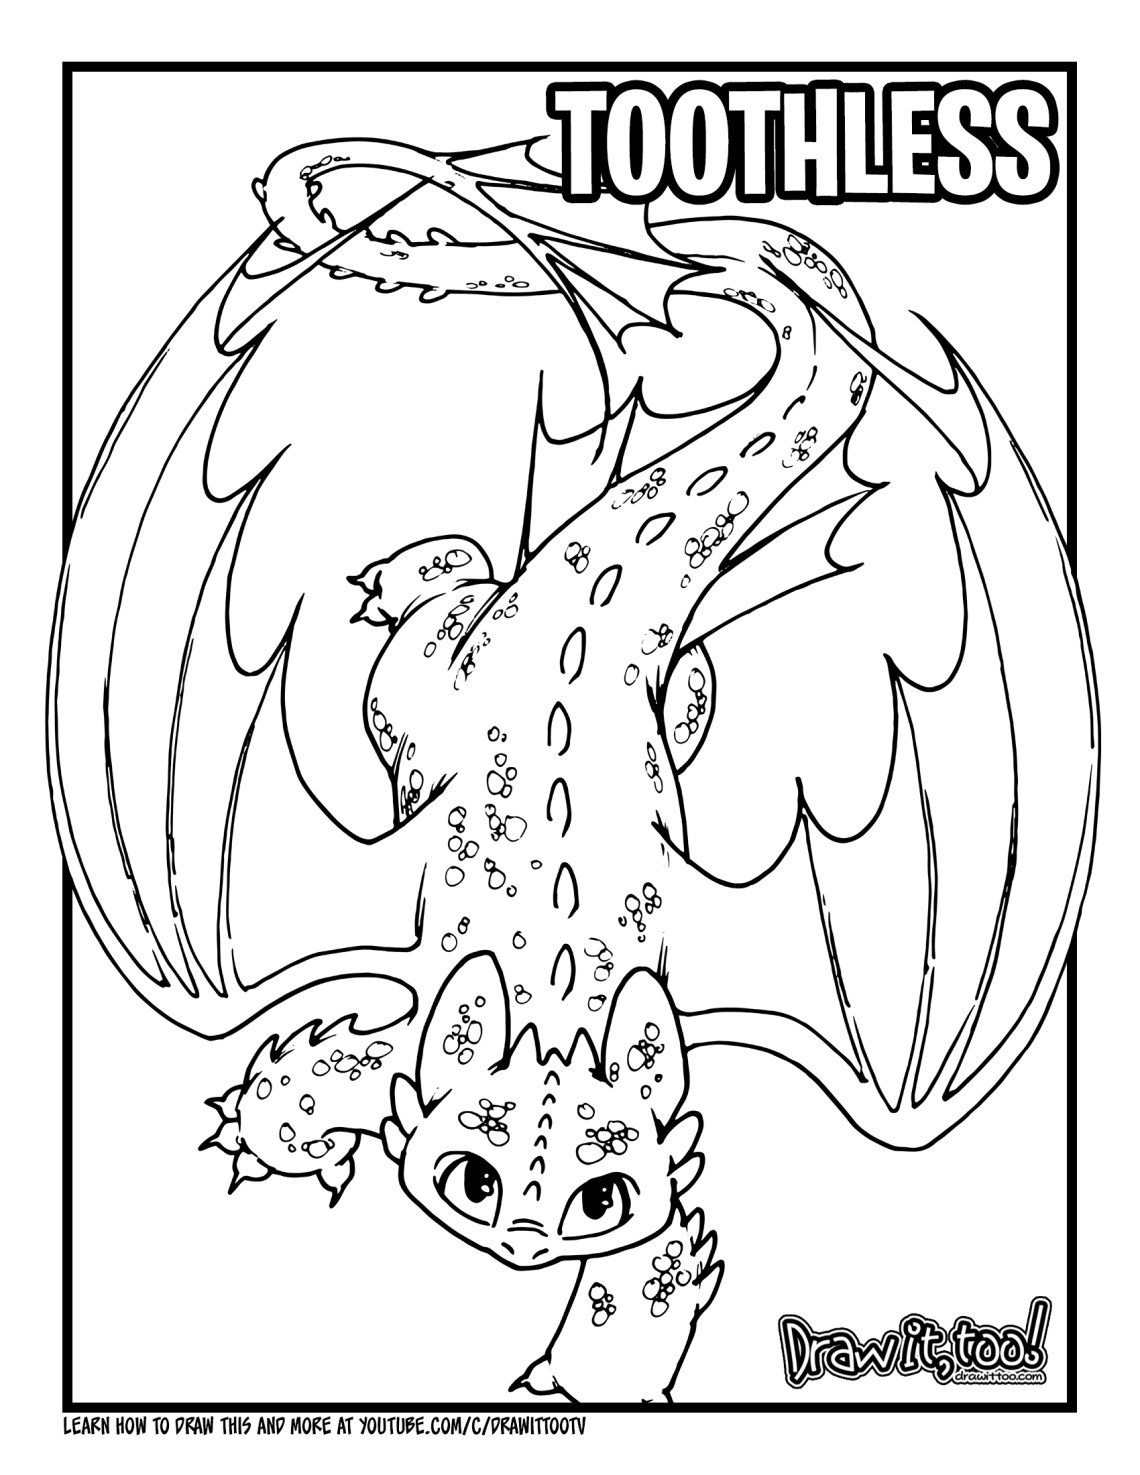 toothless coloring page free toothless coloring pages download and print toothless page coloring